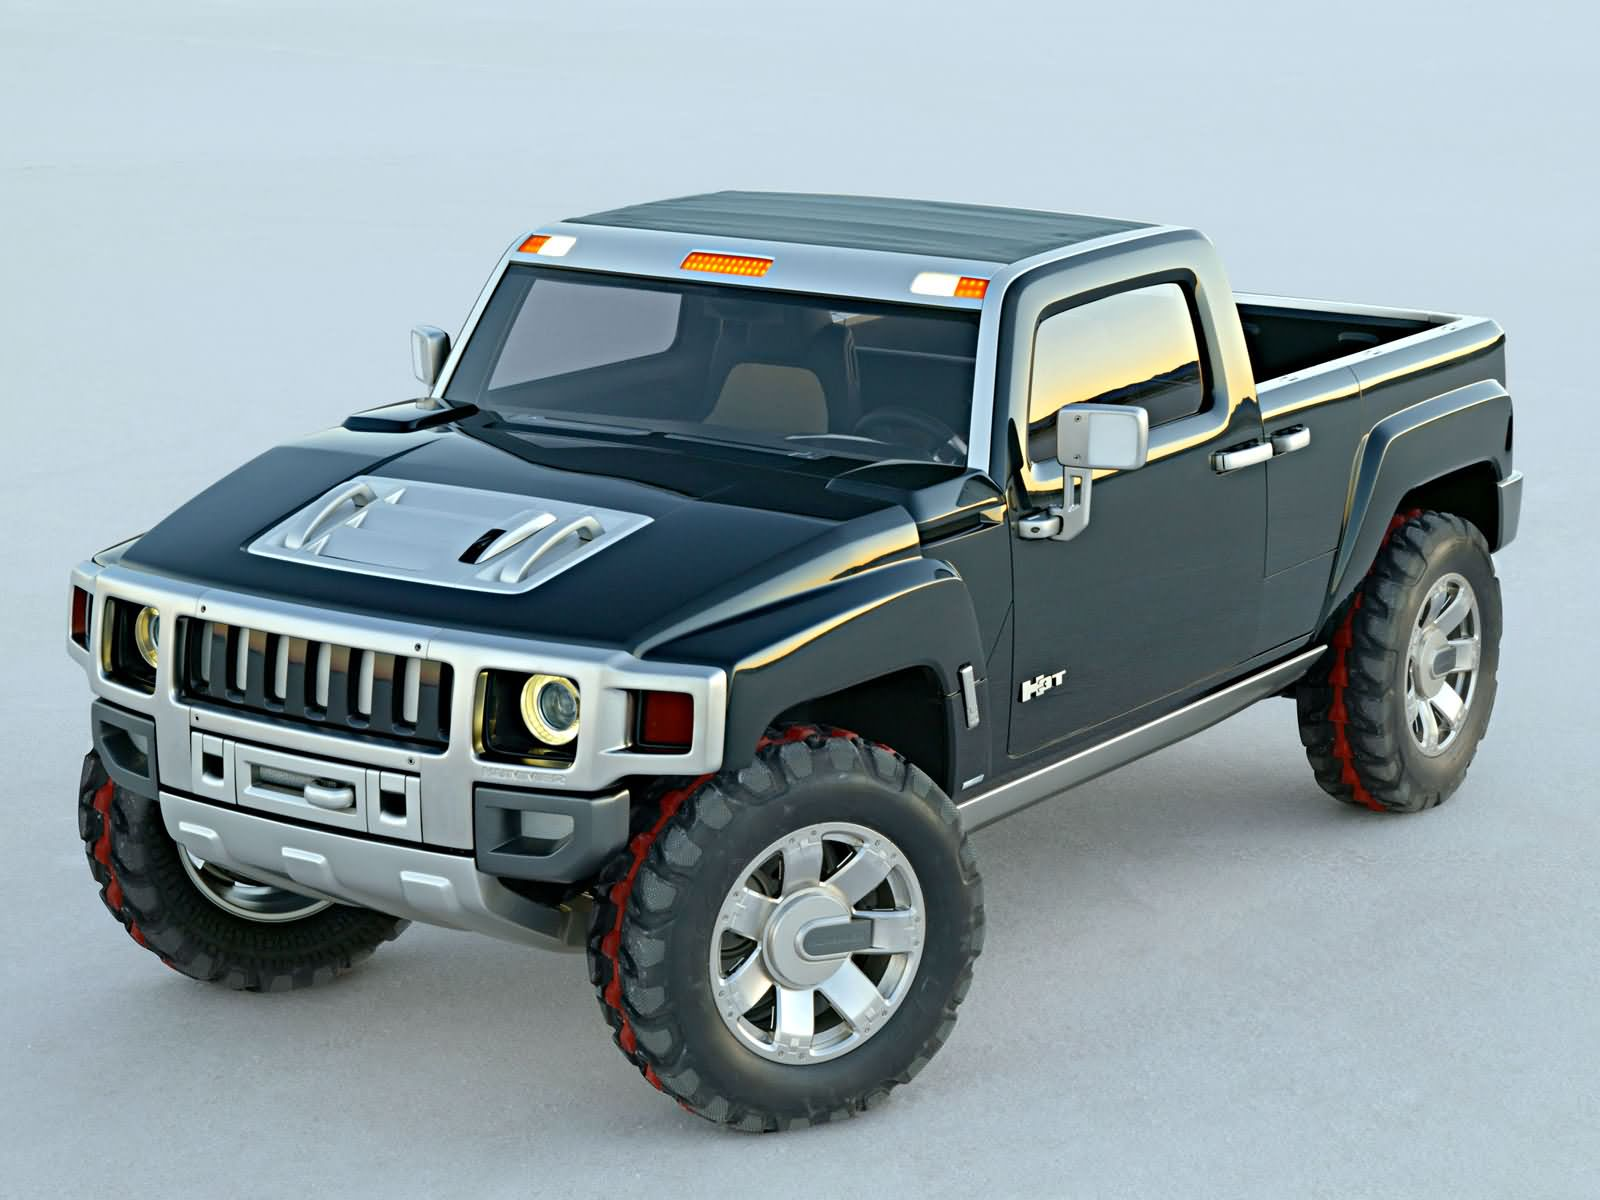 hummer h3 t concept 2003 hummer h3 t concept 2003 photo 06 car in pictures car photo gallery. Black Bedroom Furniture Sets. Home Design Ideas